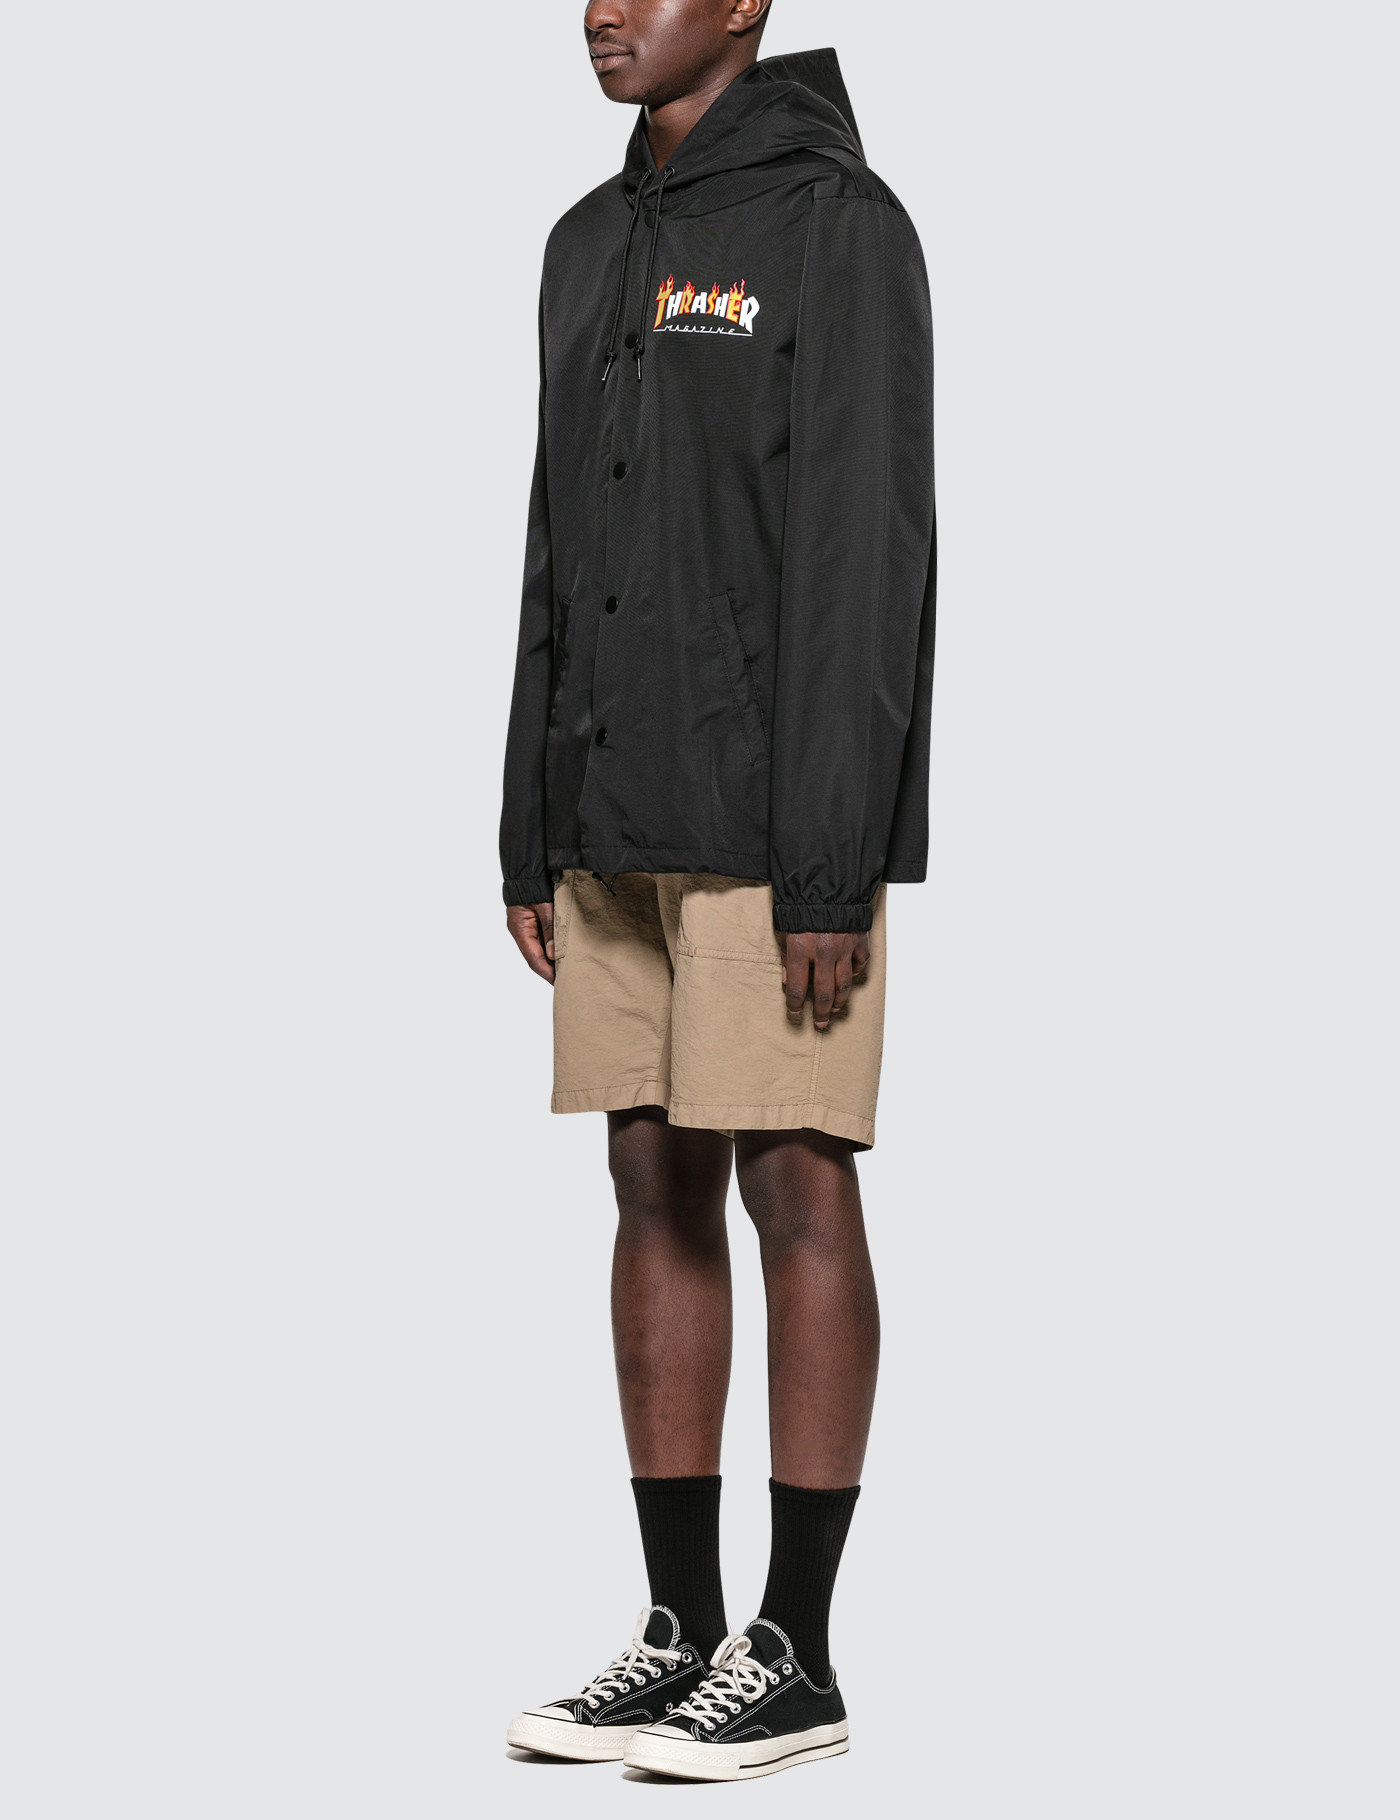 92d7f57d1d3f Buy Original Thrasher Flame Mag Coach Jacket at Indonesia